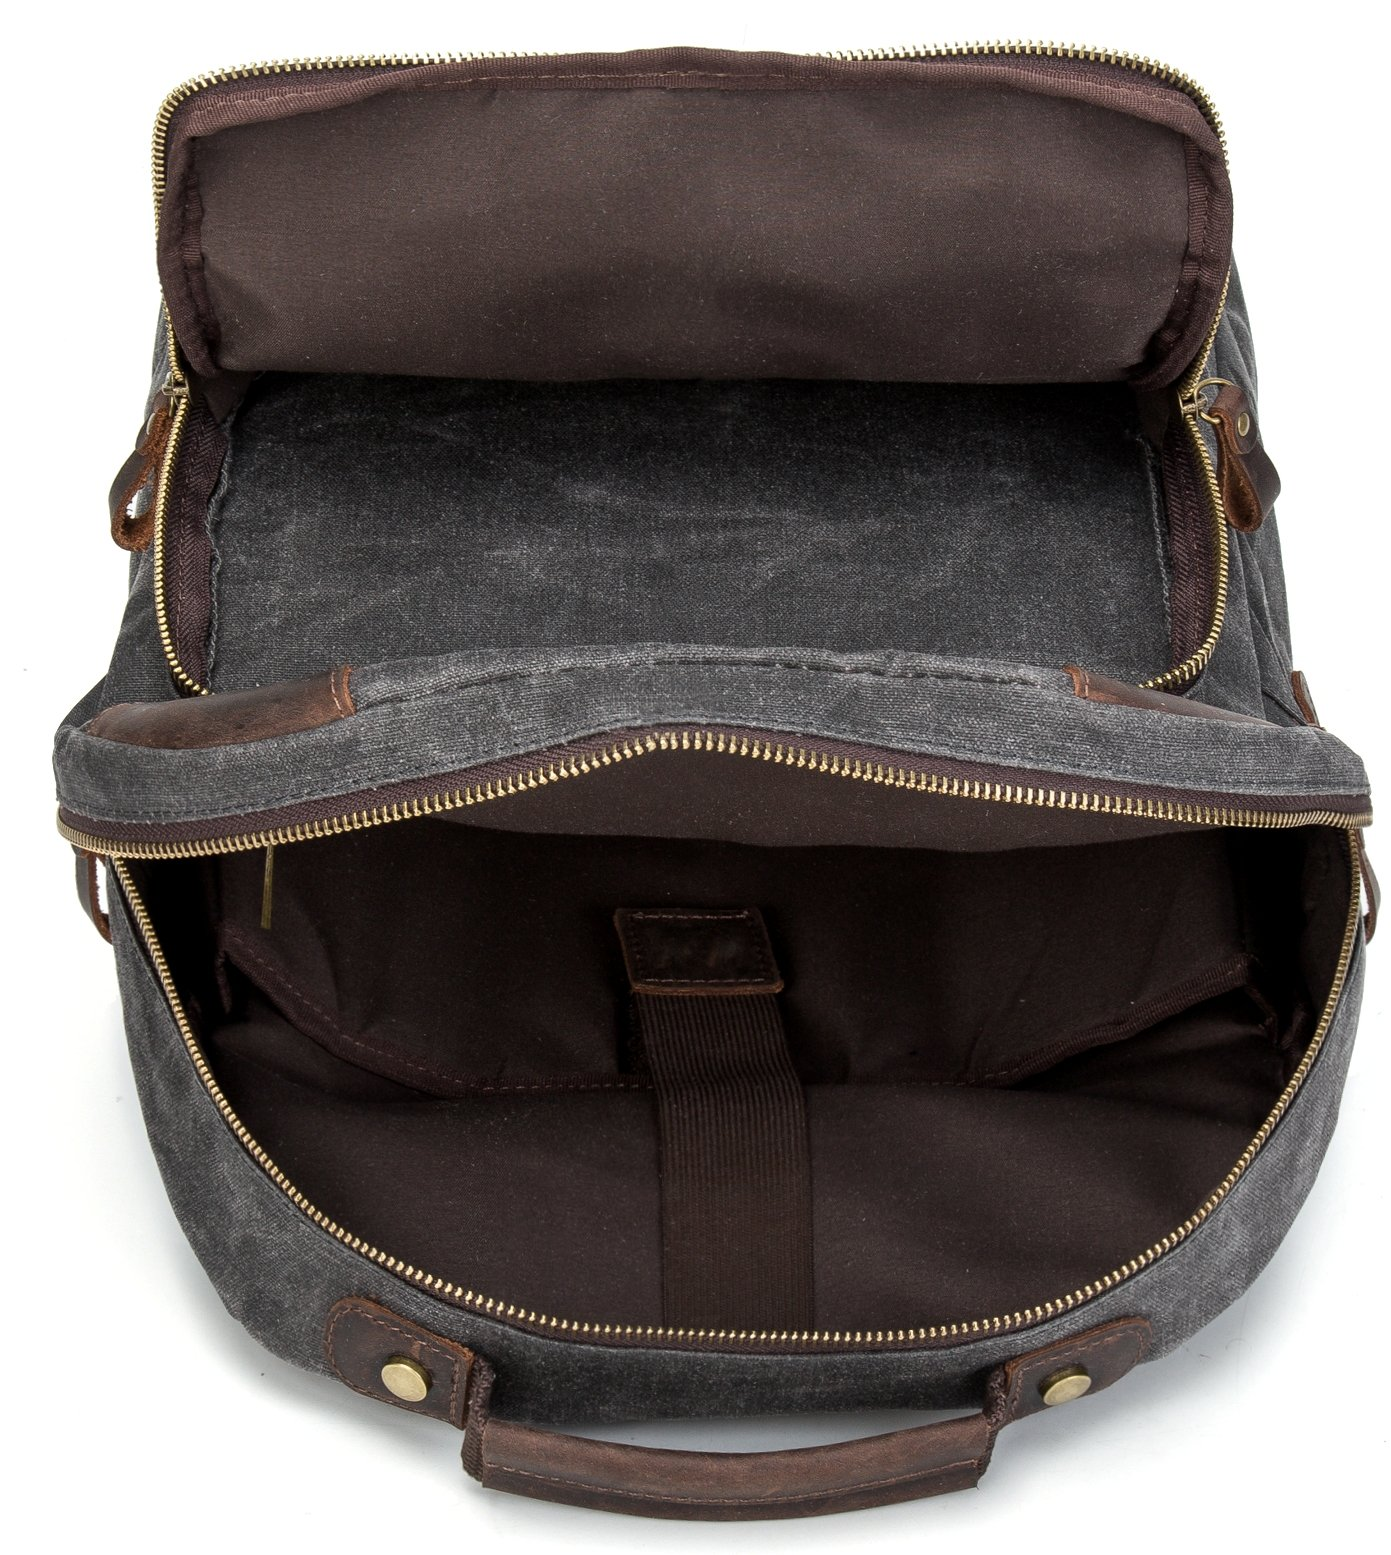 Vintave Waterproof Oil Waxed Canvas Genuine Crazy Horse Leather College Weekend Travel Laptops Backpack Fit to Laptop Up to 15.6 Inch By 1XD GEAR by 1XD GEAR (Image #5)